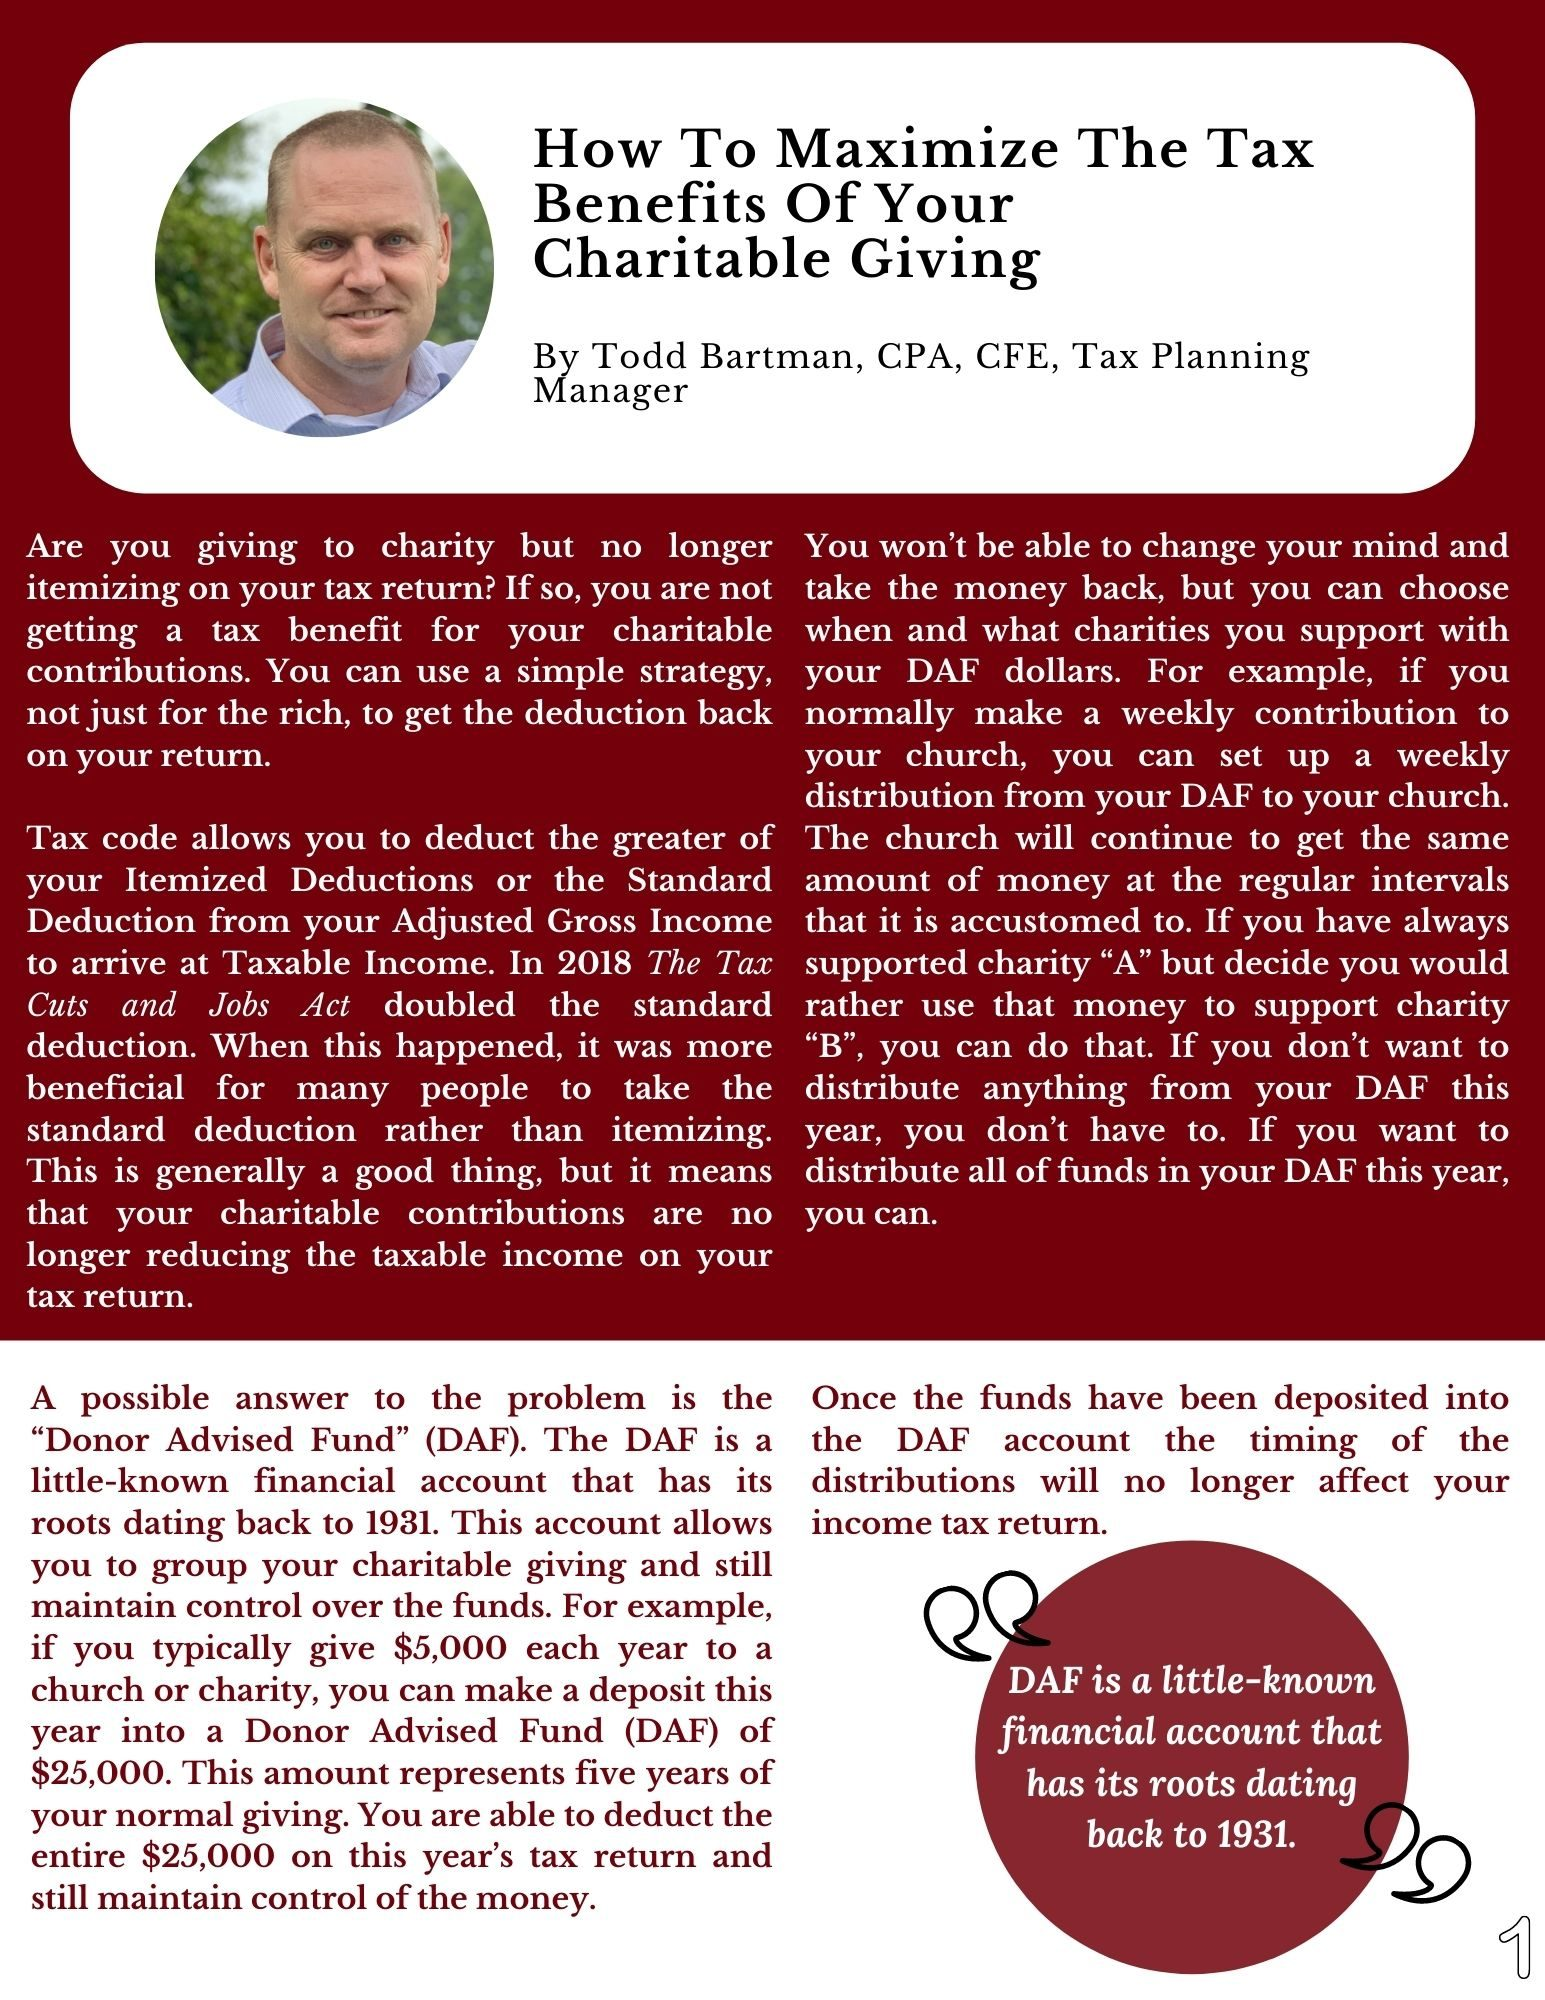 How To Maximize The Tax Benefits Of Your Charitable Giving (3)